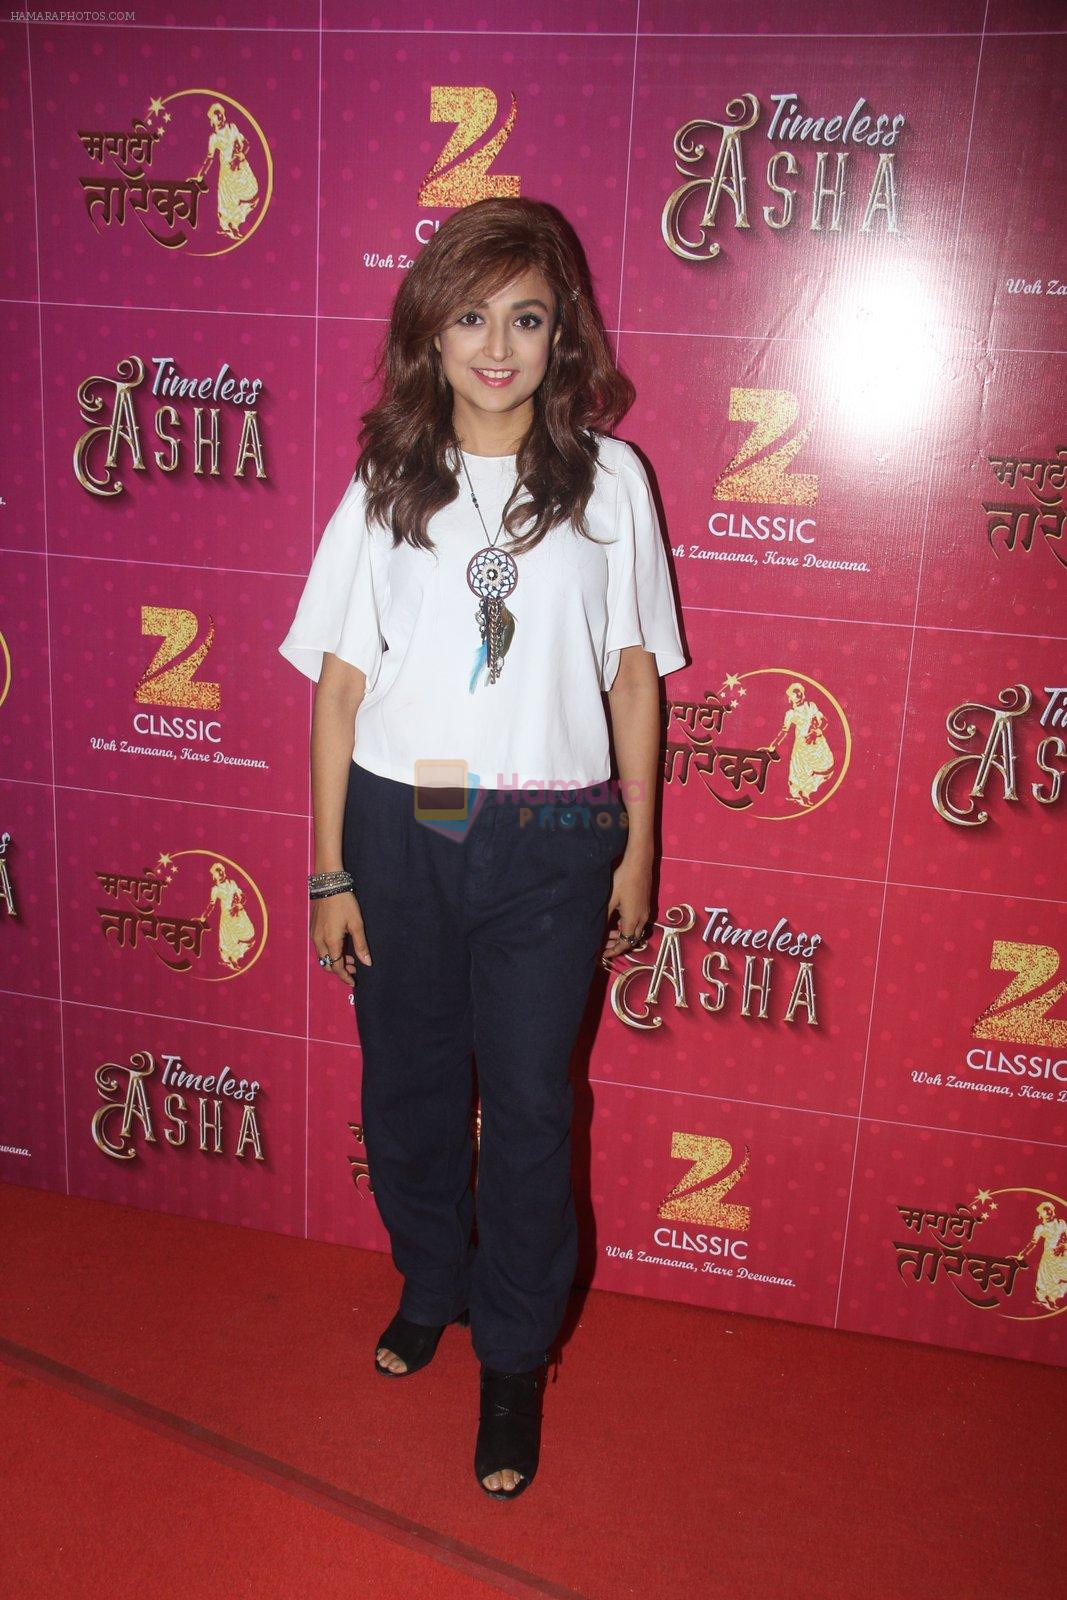 Monali Thakur during the occasion of Bollywood singer Asha Bhosle 83rd birthday in Mumbai, India on September 8, 2016